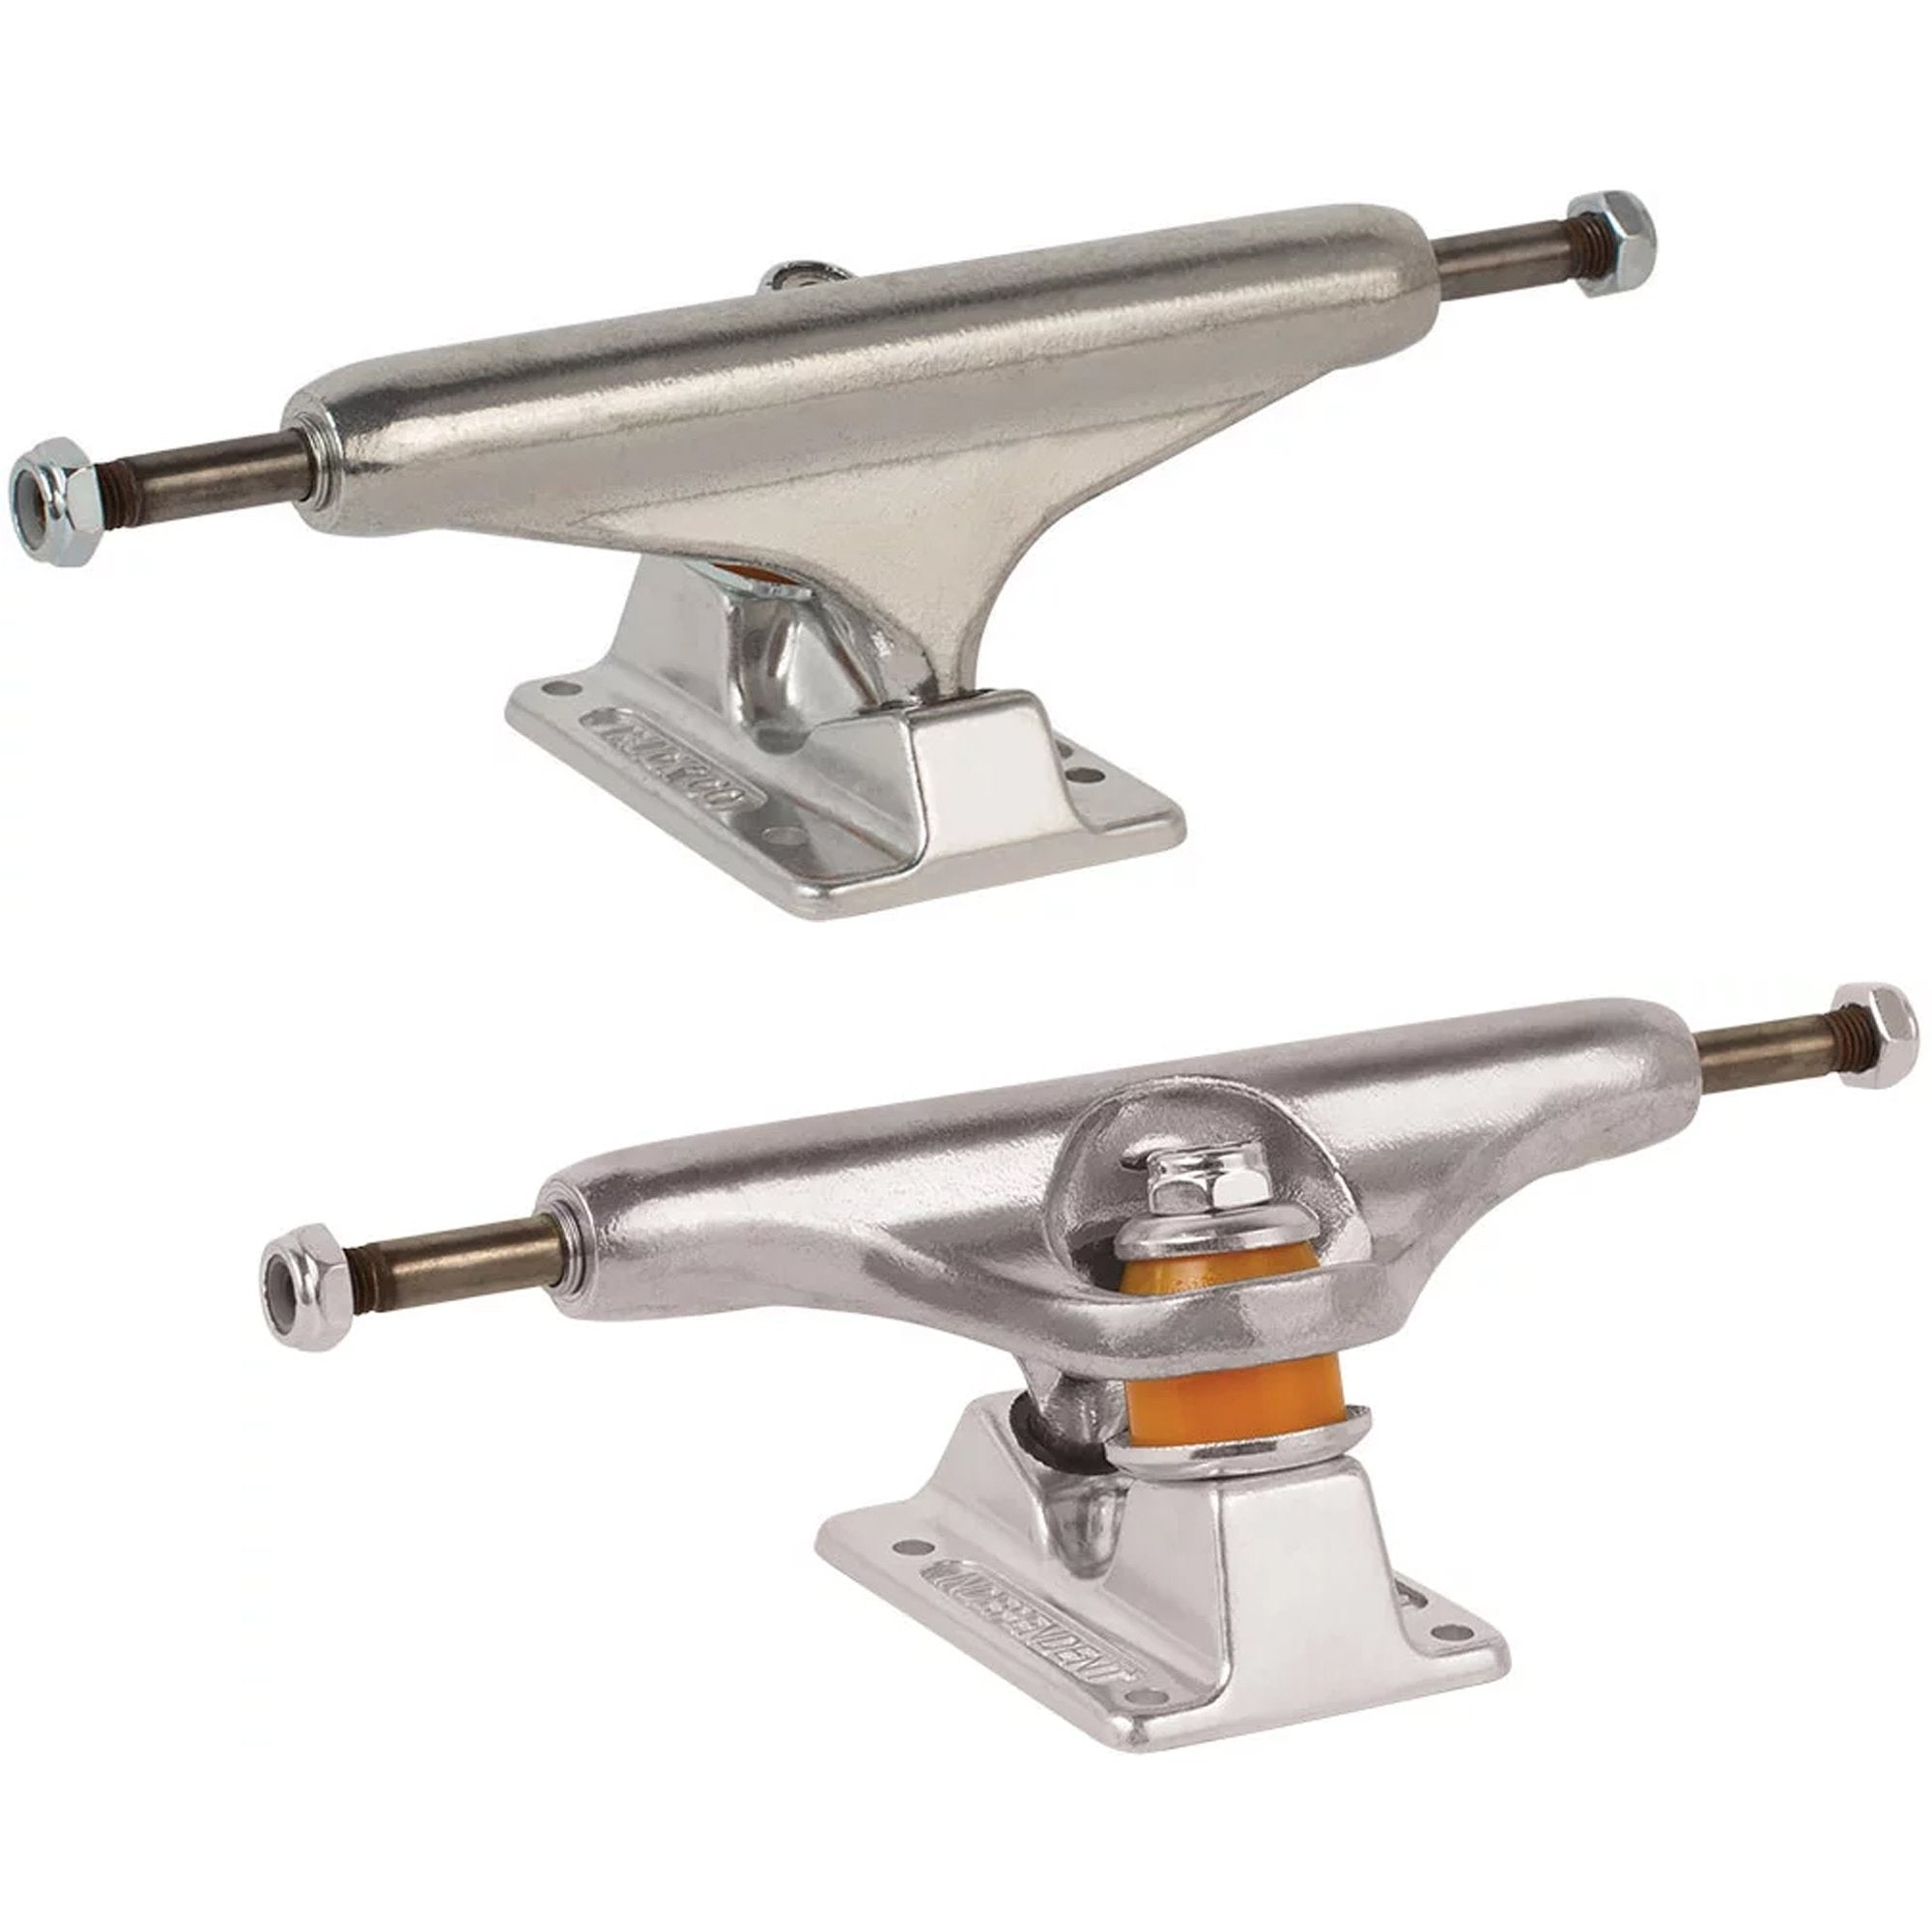 Independent Stage 11 Forged Titanium Hollow 169mm Skateboard Trucks